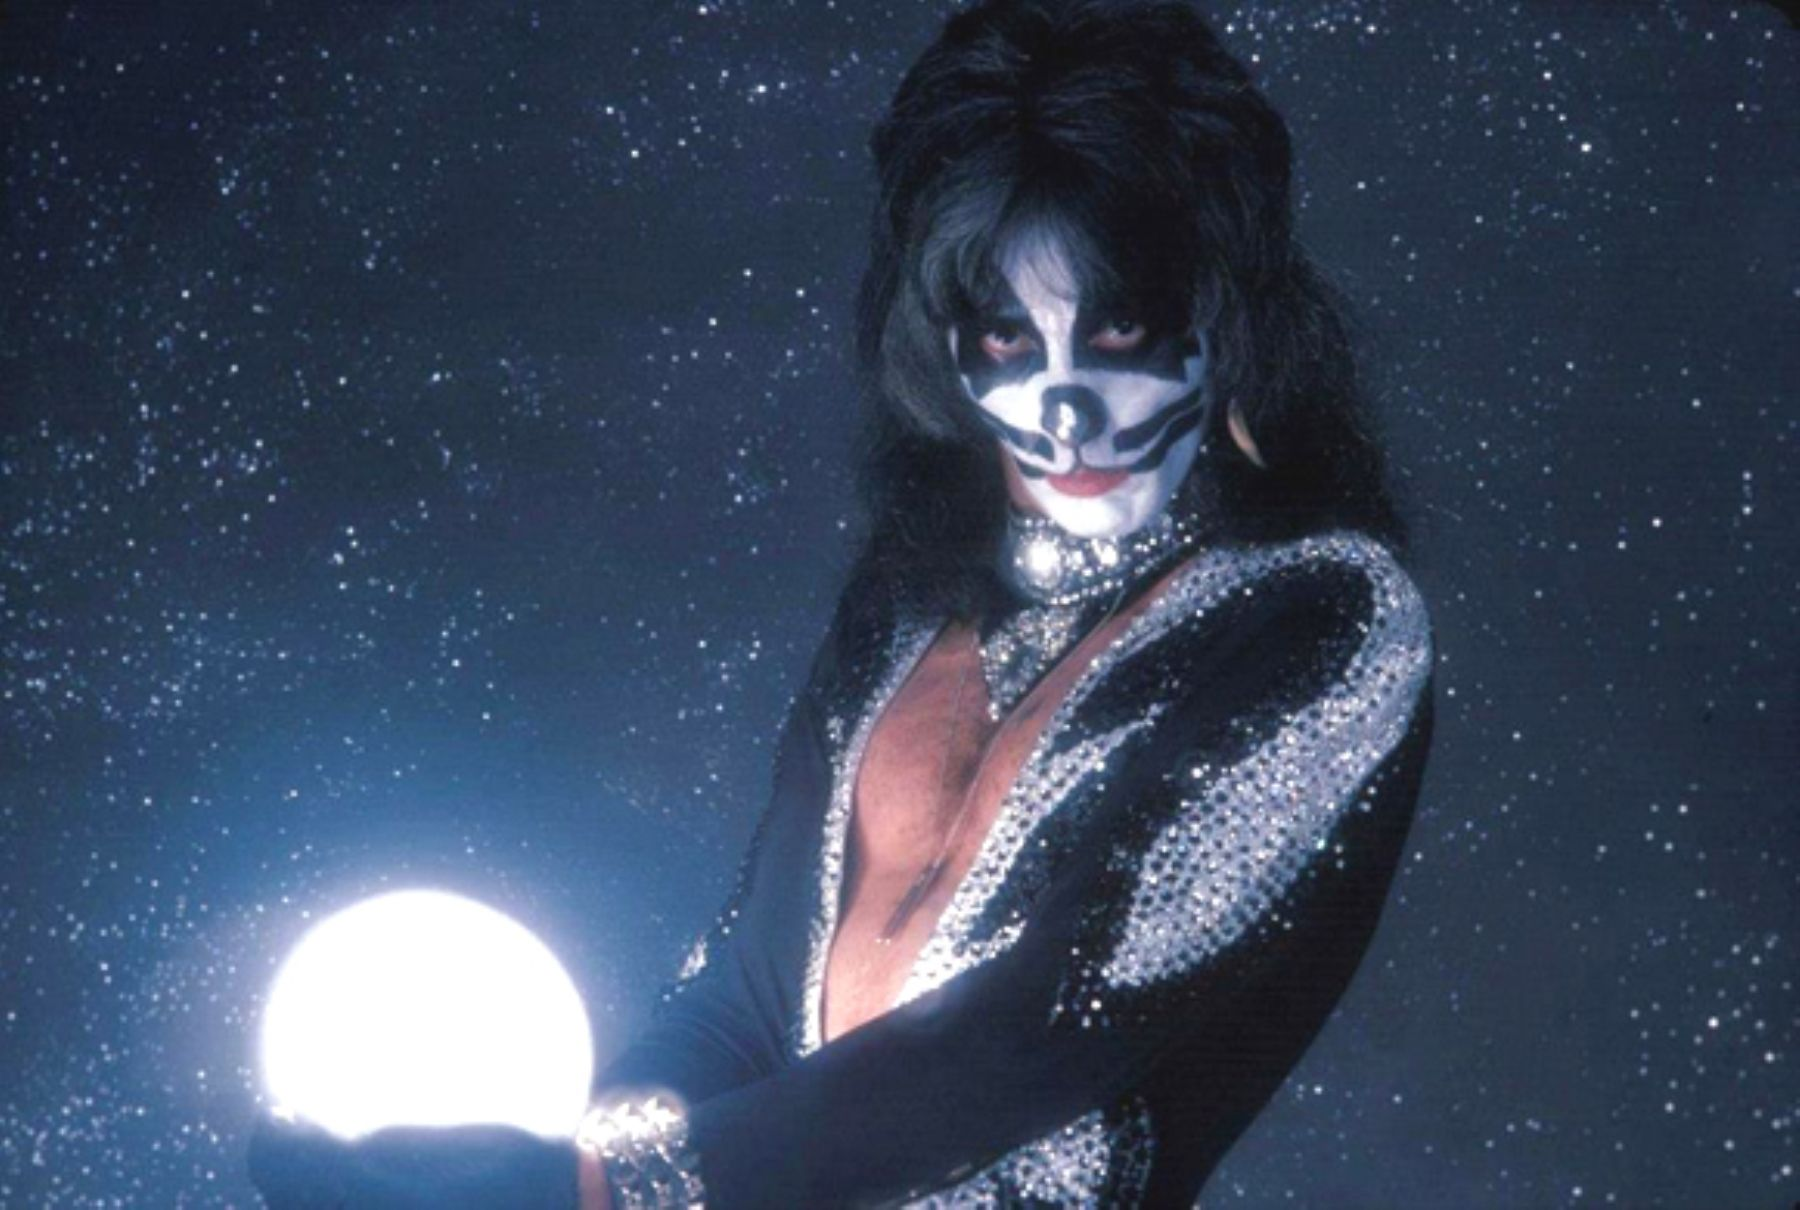 Dystopian Book Club Podcast: Peter Criss' Makeup to Breakup